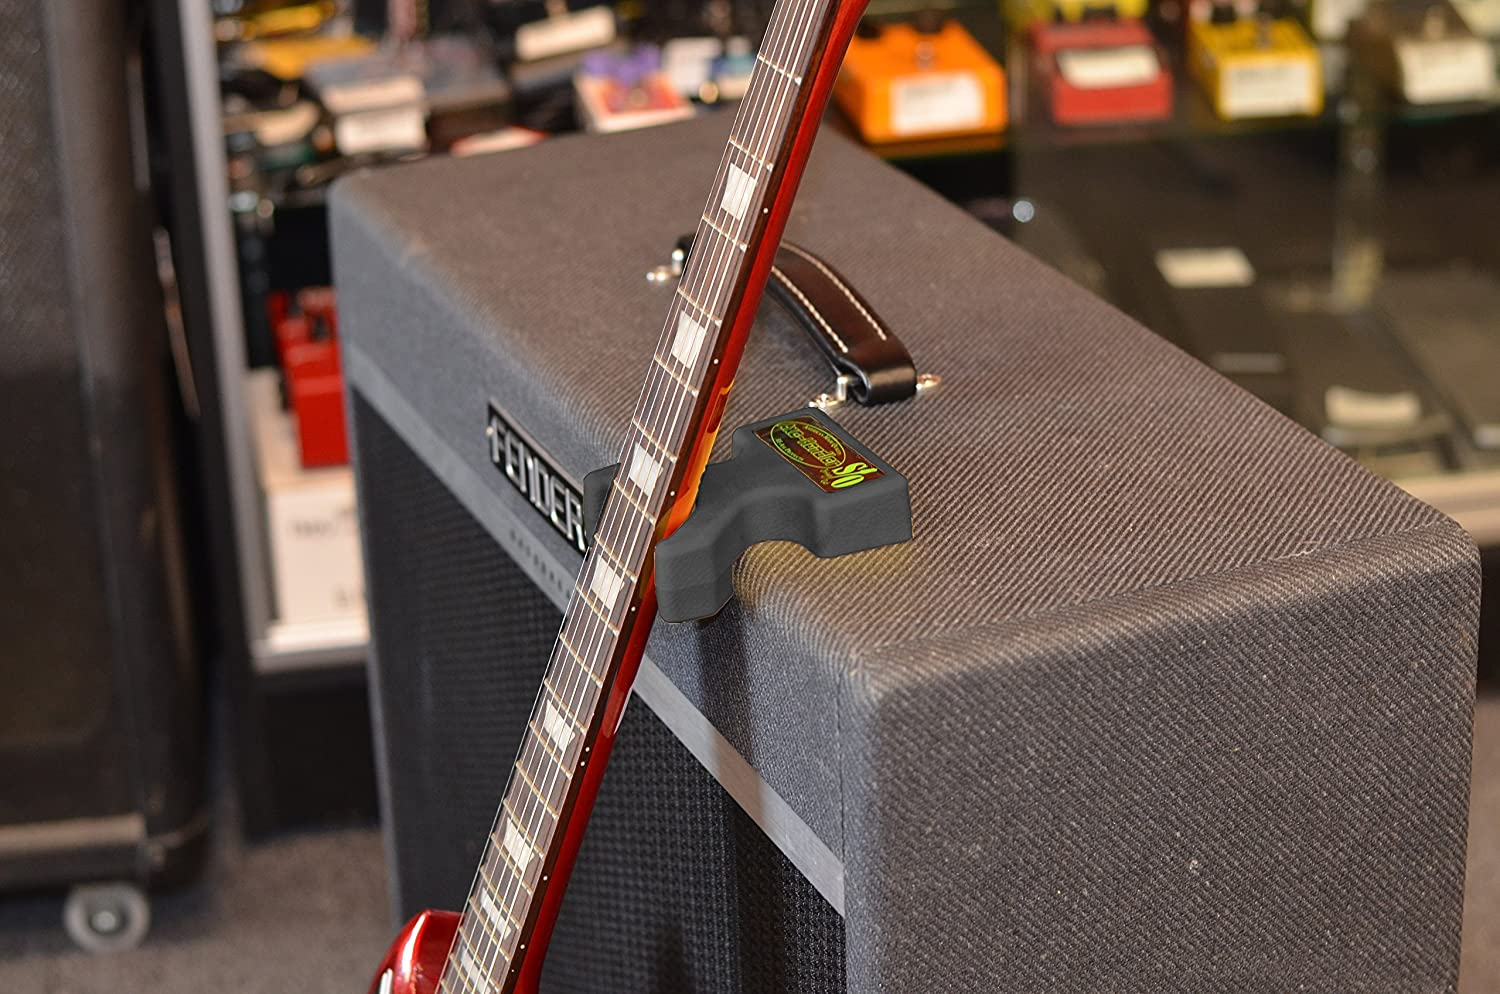 String-Out Version with Black Finish New Axe-Handler Instant Guitar Stand Cleaning Multi-Use as a Neck Support for String Changes and Repairs